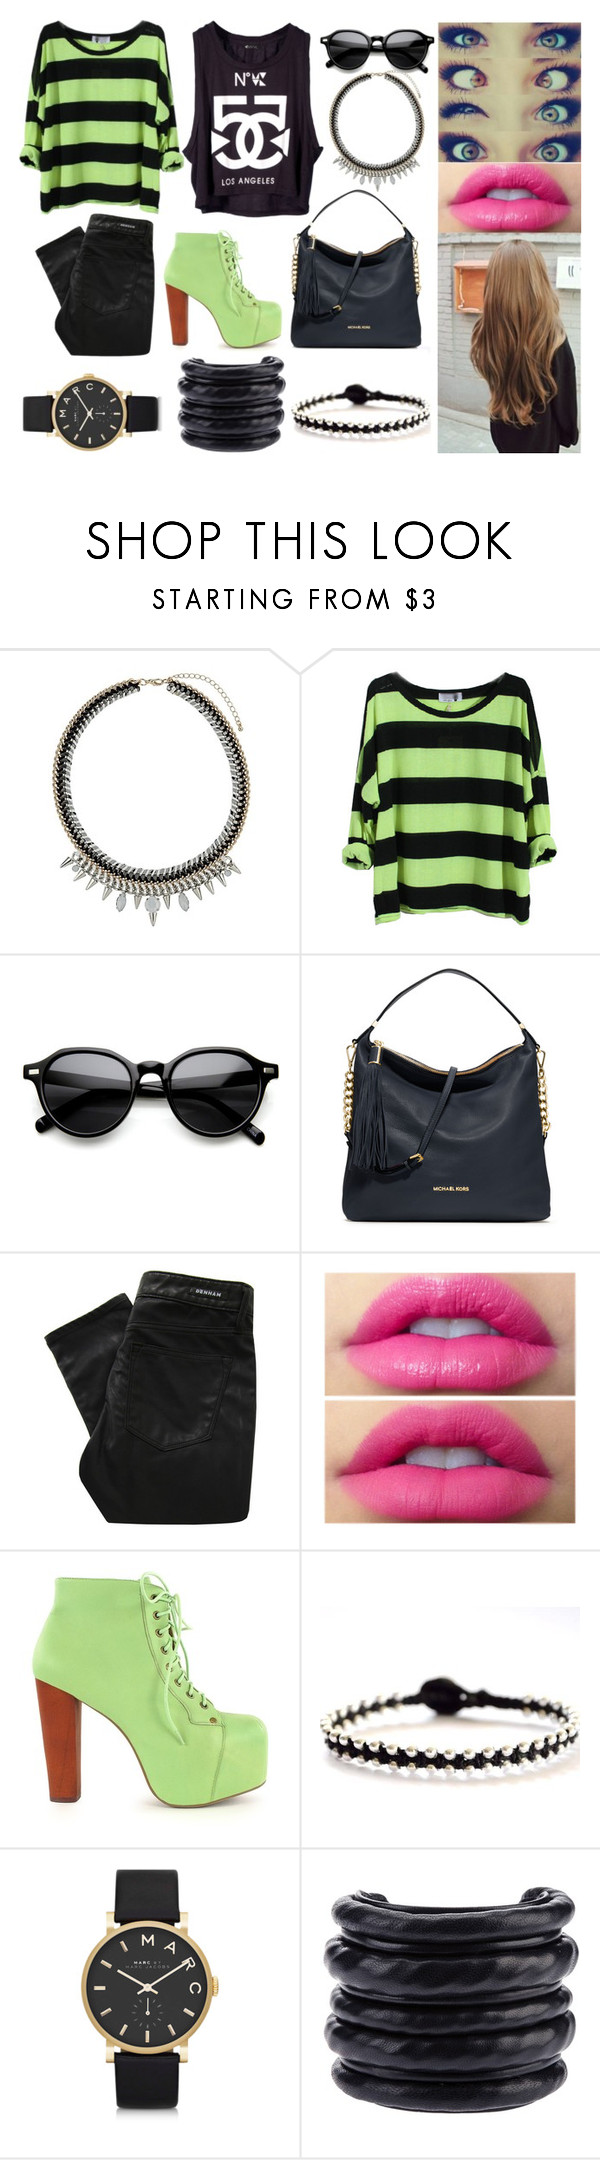 """""""Black"""" by mila4321 ❤ liked on Polyvore featuring Topshop, INDIE HAIR, MICHAEL Michael Kors, Denham, Jeffrey Campbell, Vivien Frank Designs, Marc by Marc Jacobs and Hôtel Particulier"""